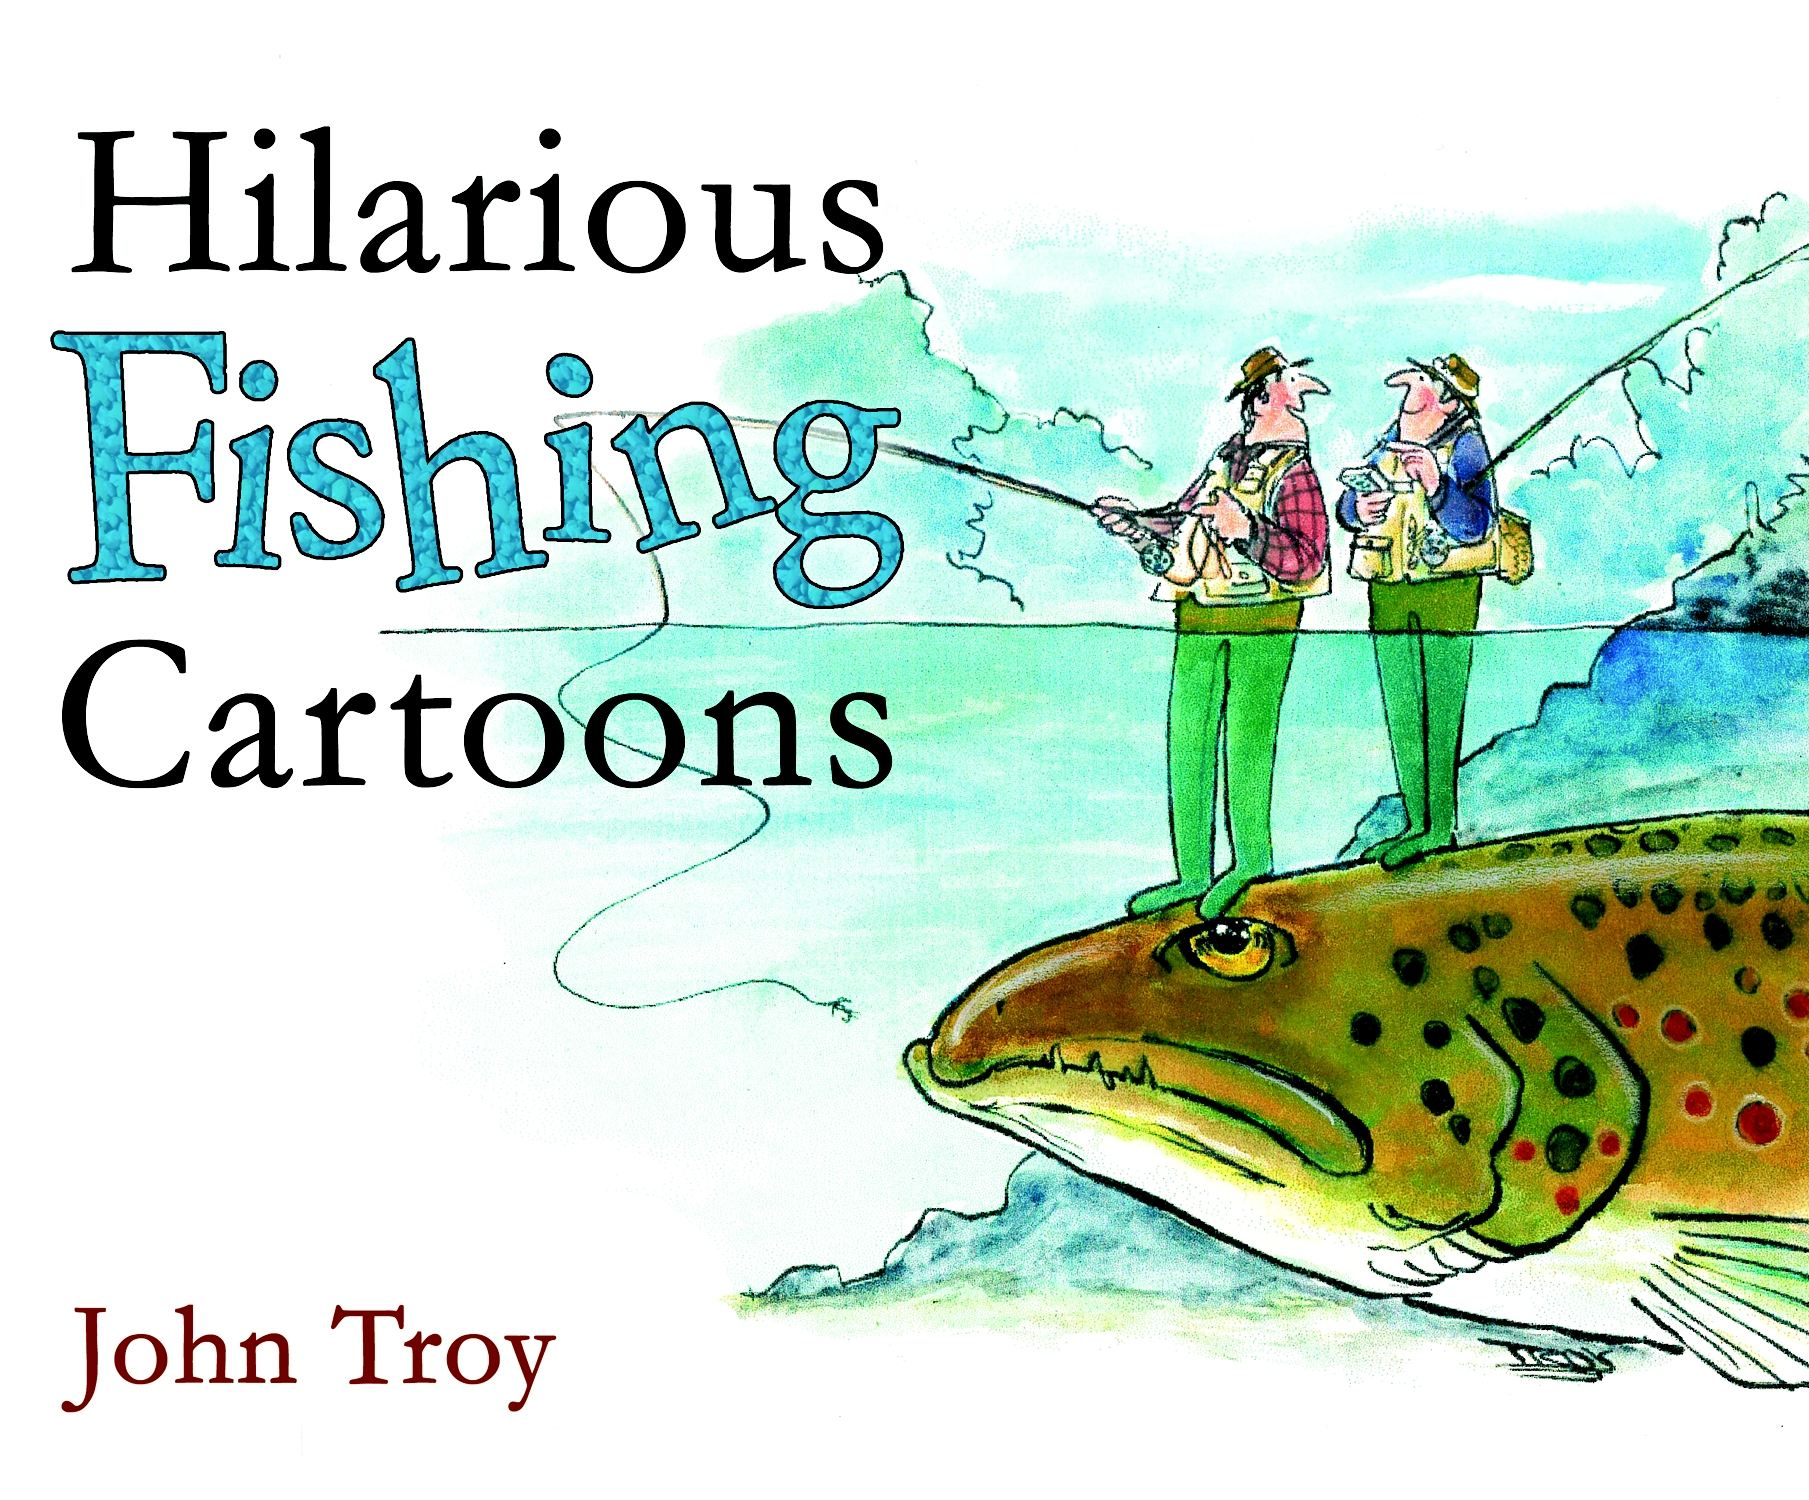 Hilarious Fishing Cartoons By: John Troy